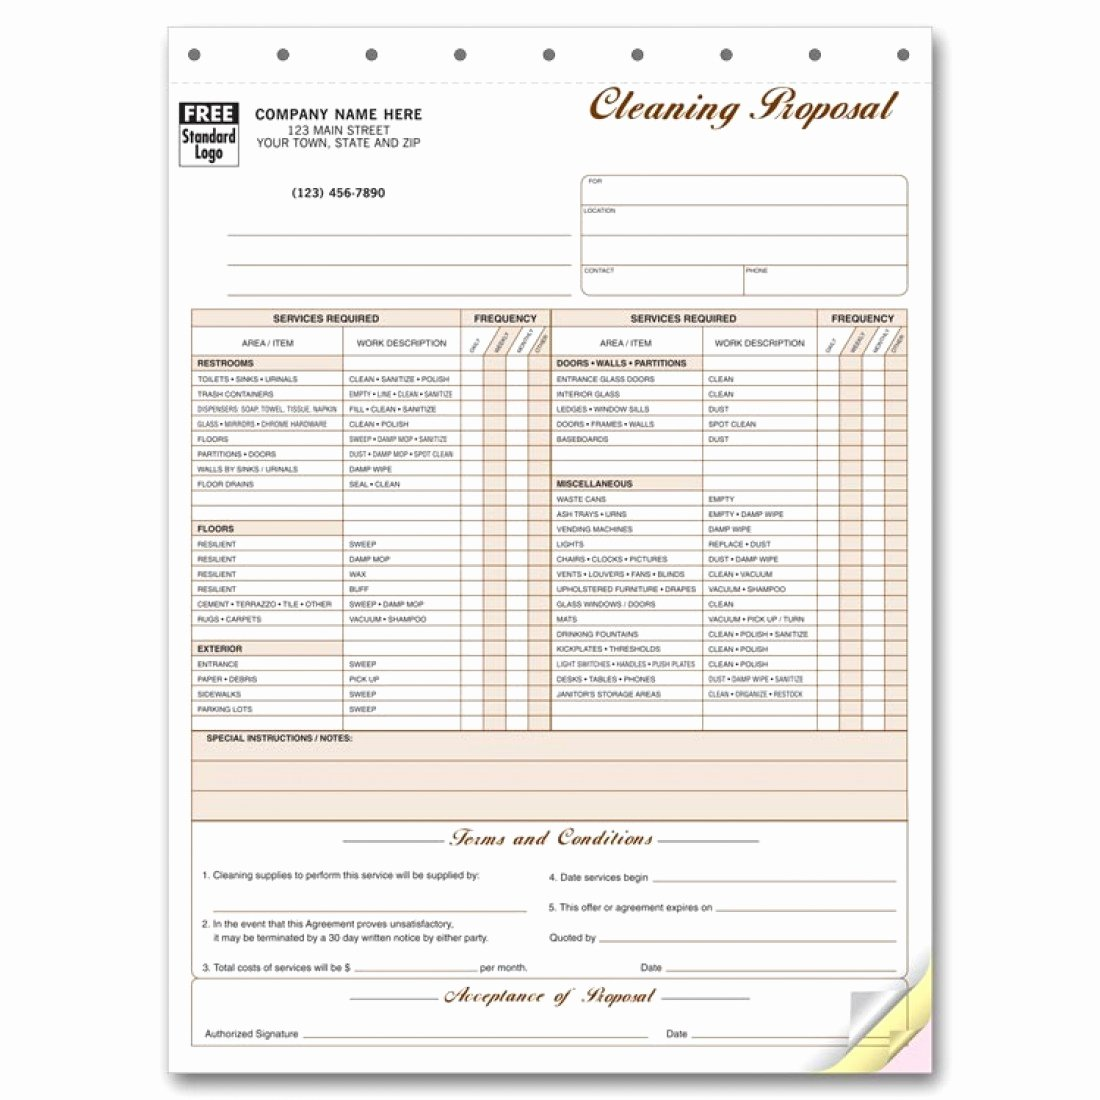 Free Cleaning Proposal Template Best Of Cleaning Proposal forms